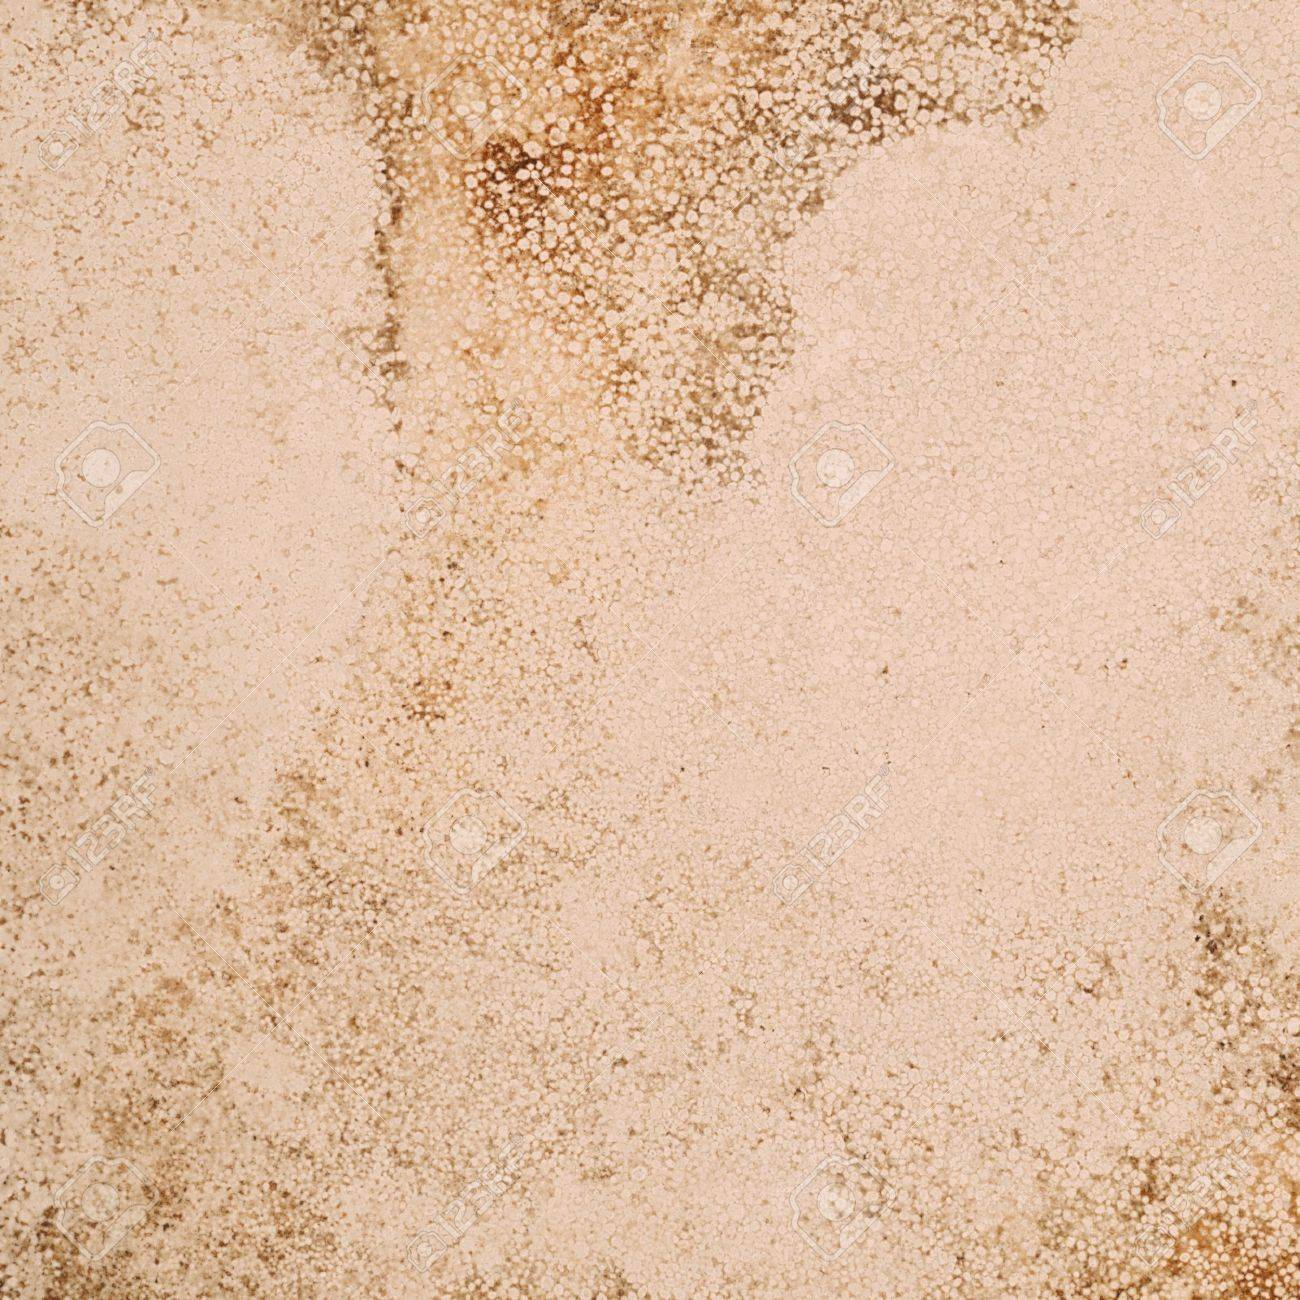 Classic Travertine Marble Texture Background Stock Photo Picture And Royalty Free Image Image 12822978